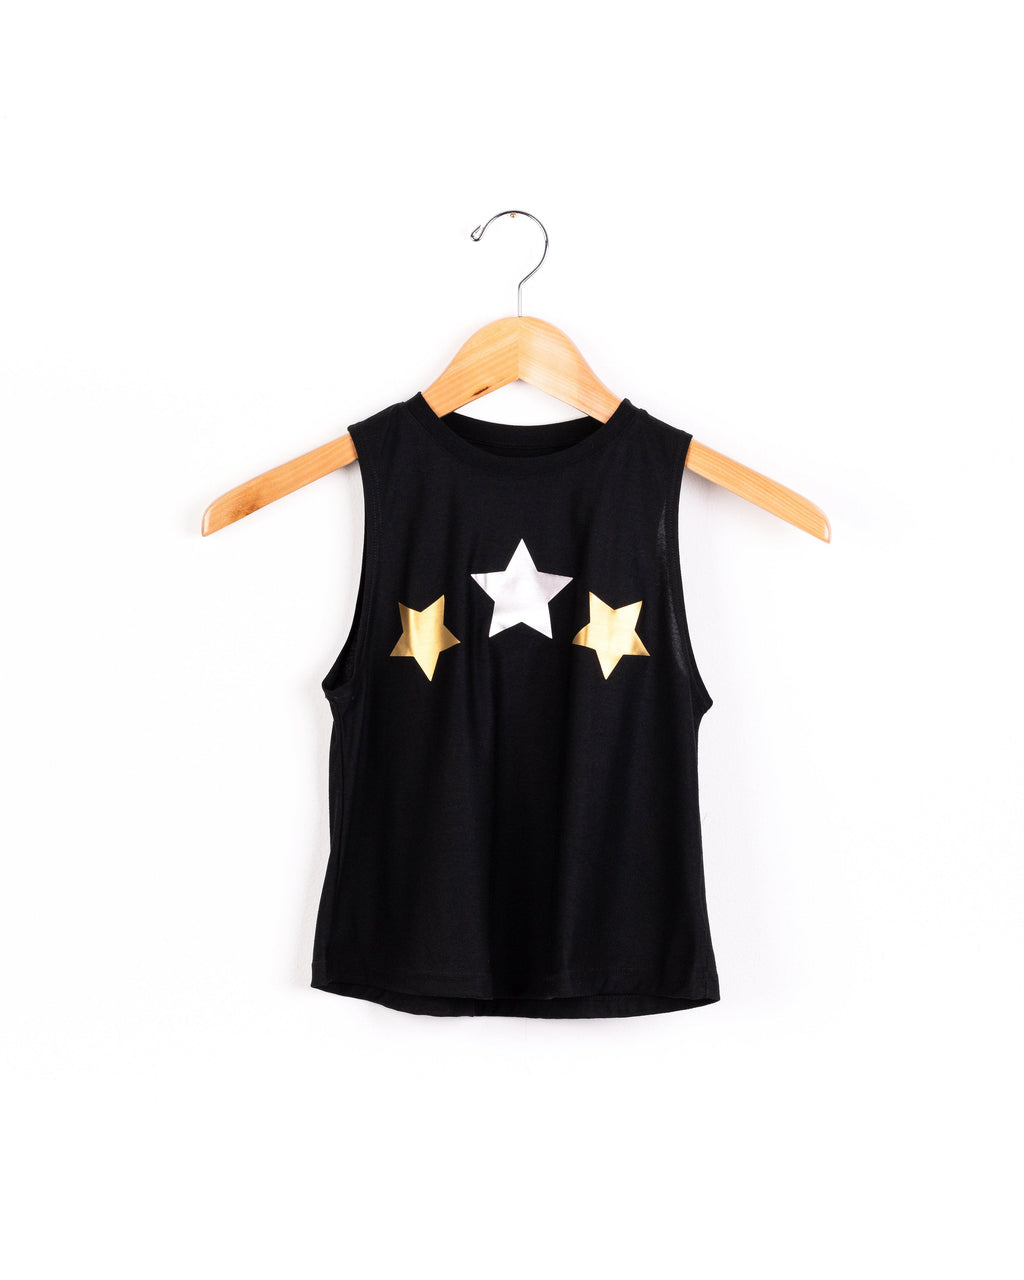 Stars Silver and Gold Black Tank - Fanilu Activewear For Kids